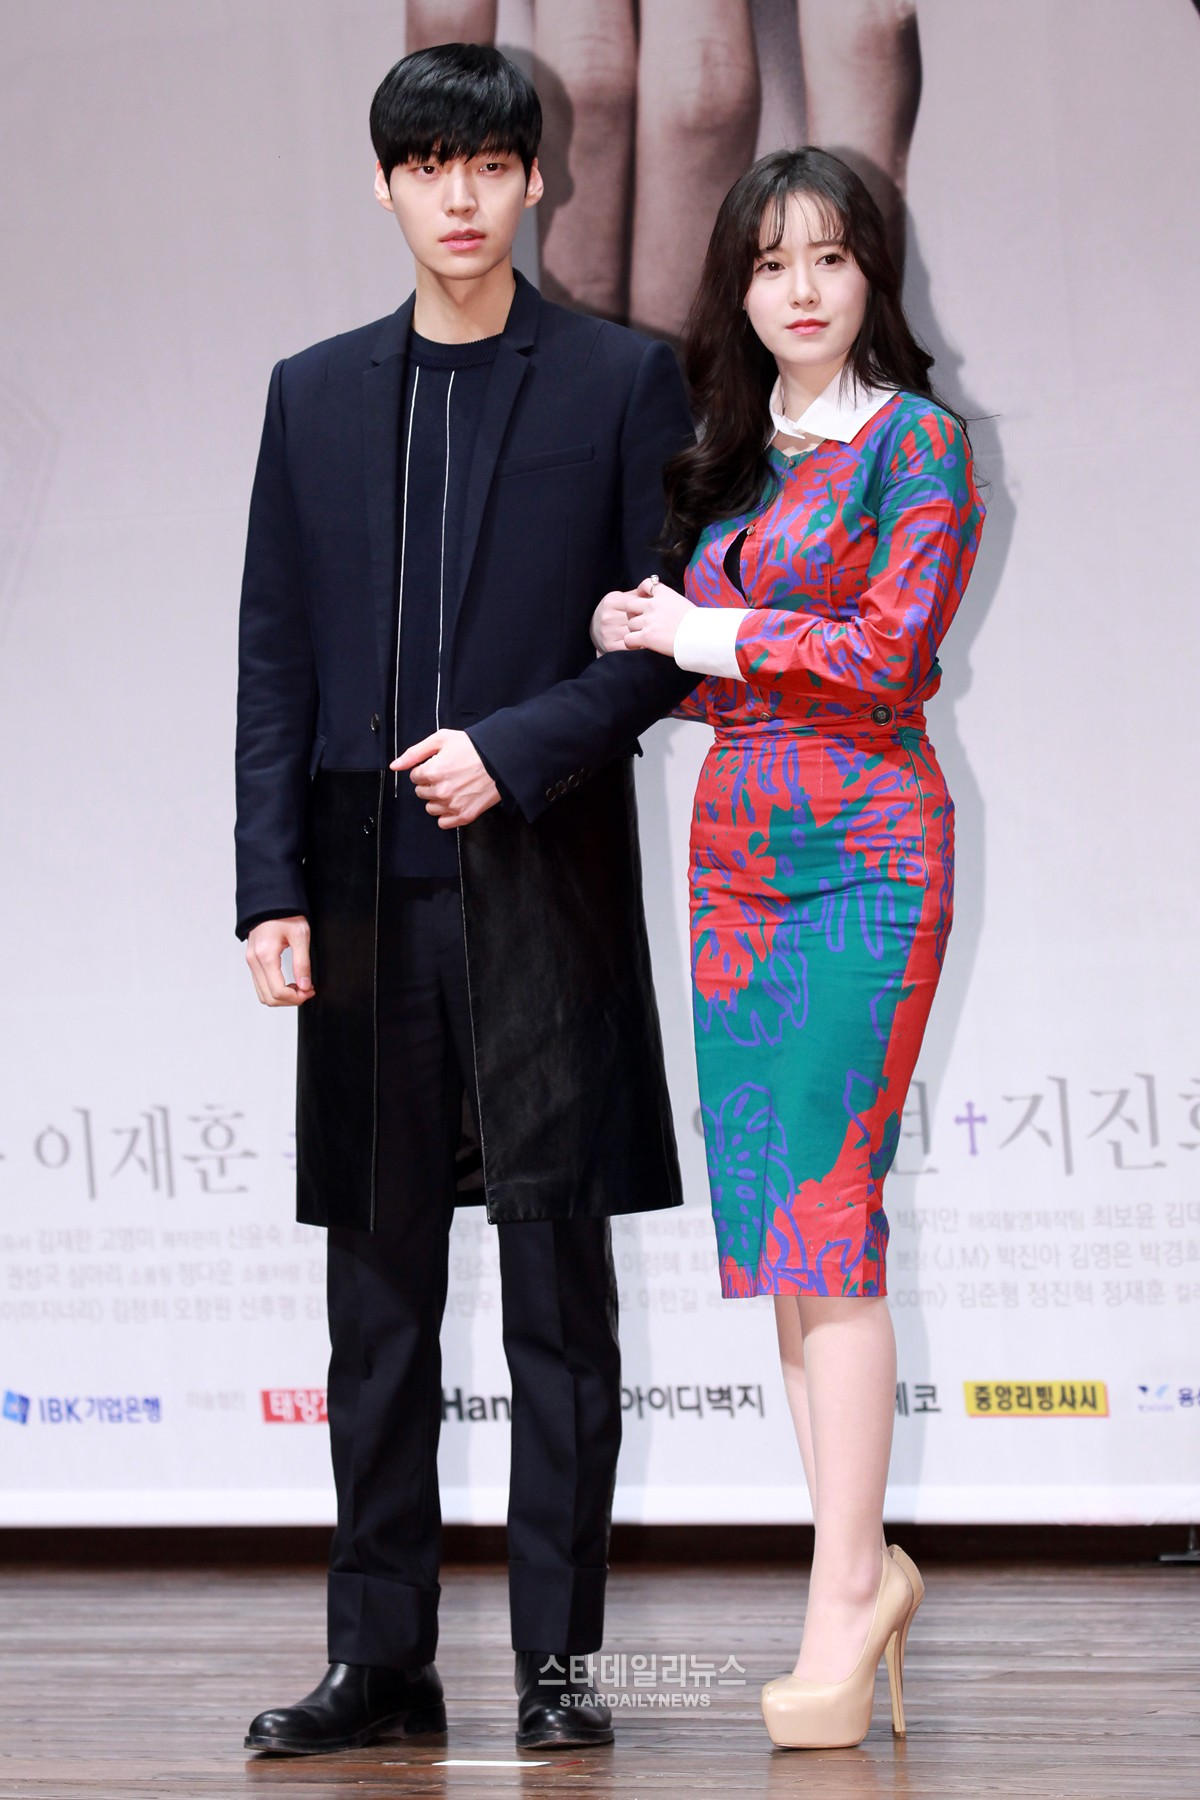 Co stars ahn jae hyun and ku hye sun reportedly dating reps respond